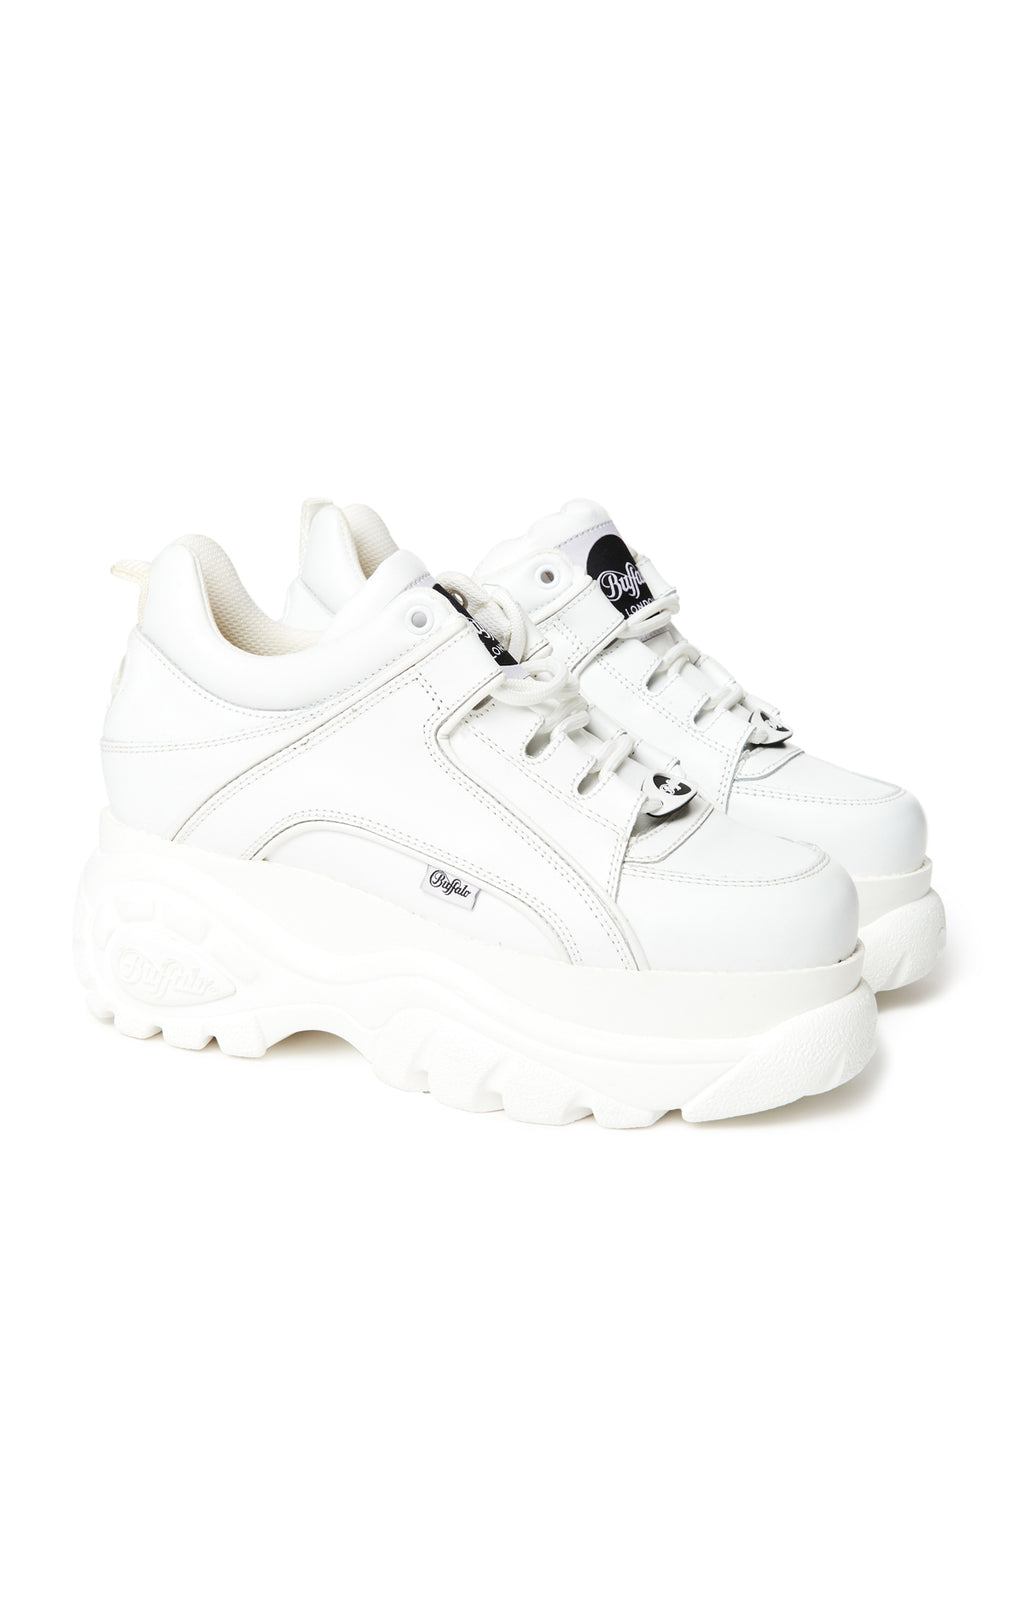 BUFFALLO LONDON CLASSIC PLATFORM SNEAKER